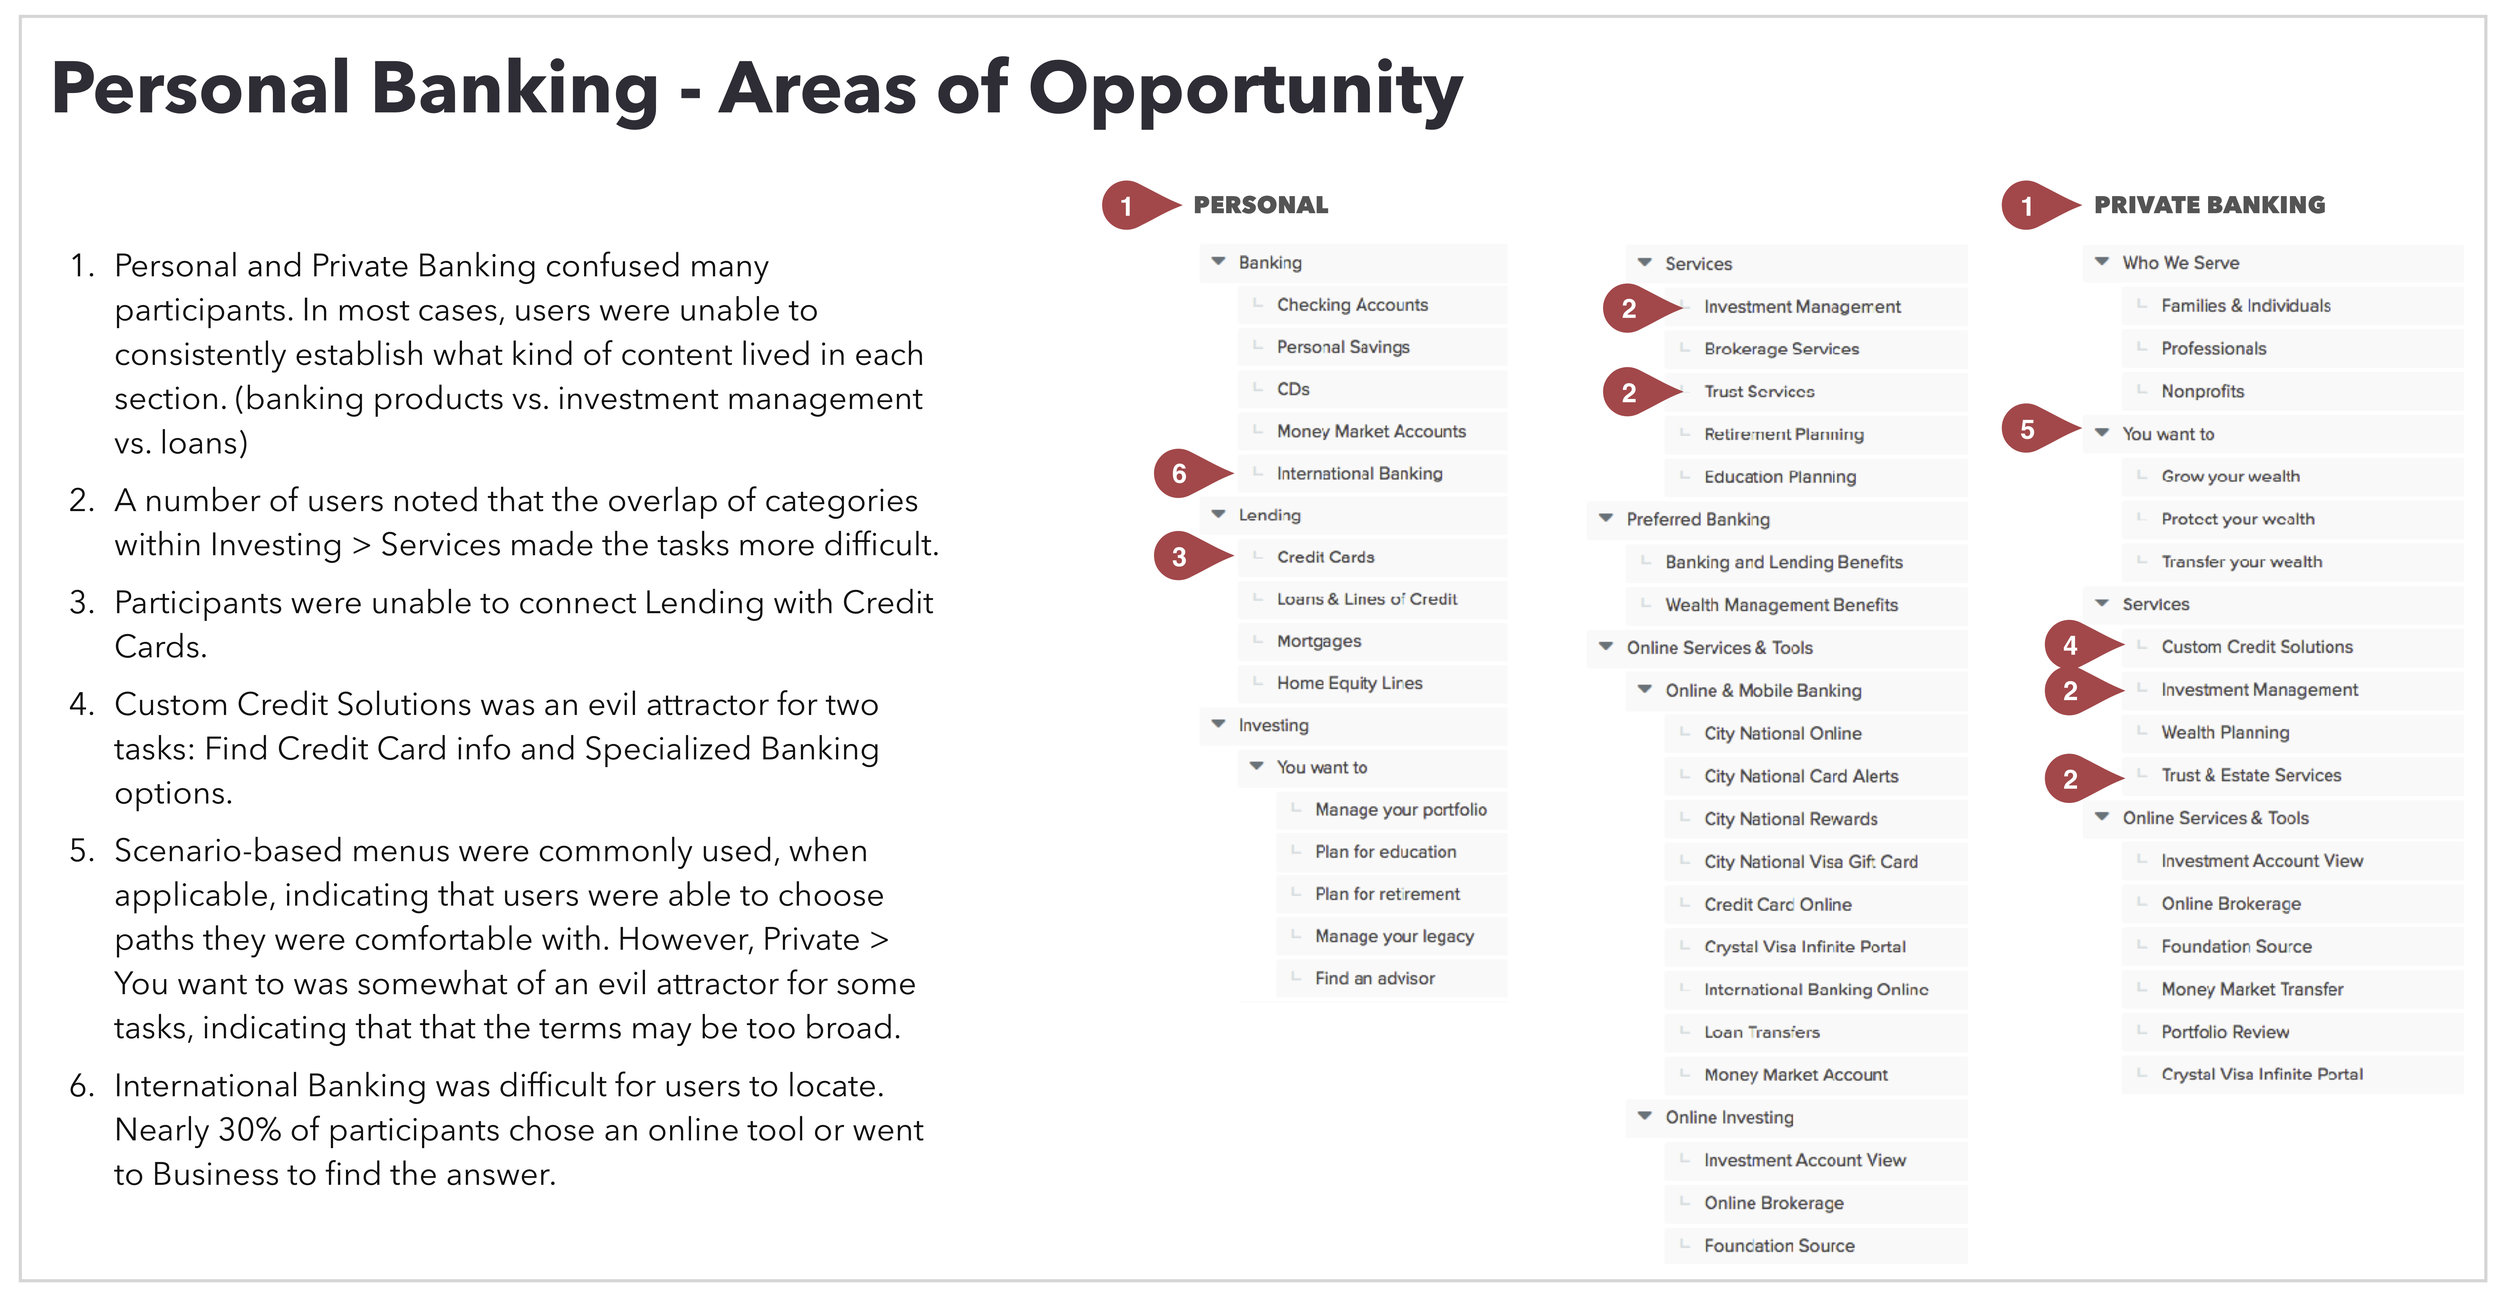 Excerpt: Tree Test Findings document section executive summary (areas of opportunity).